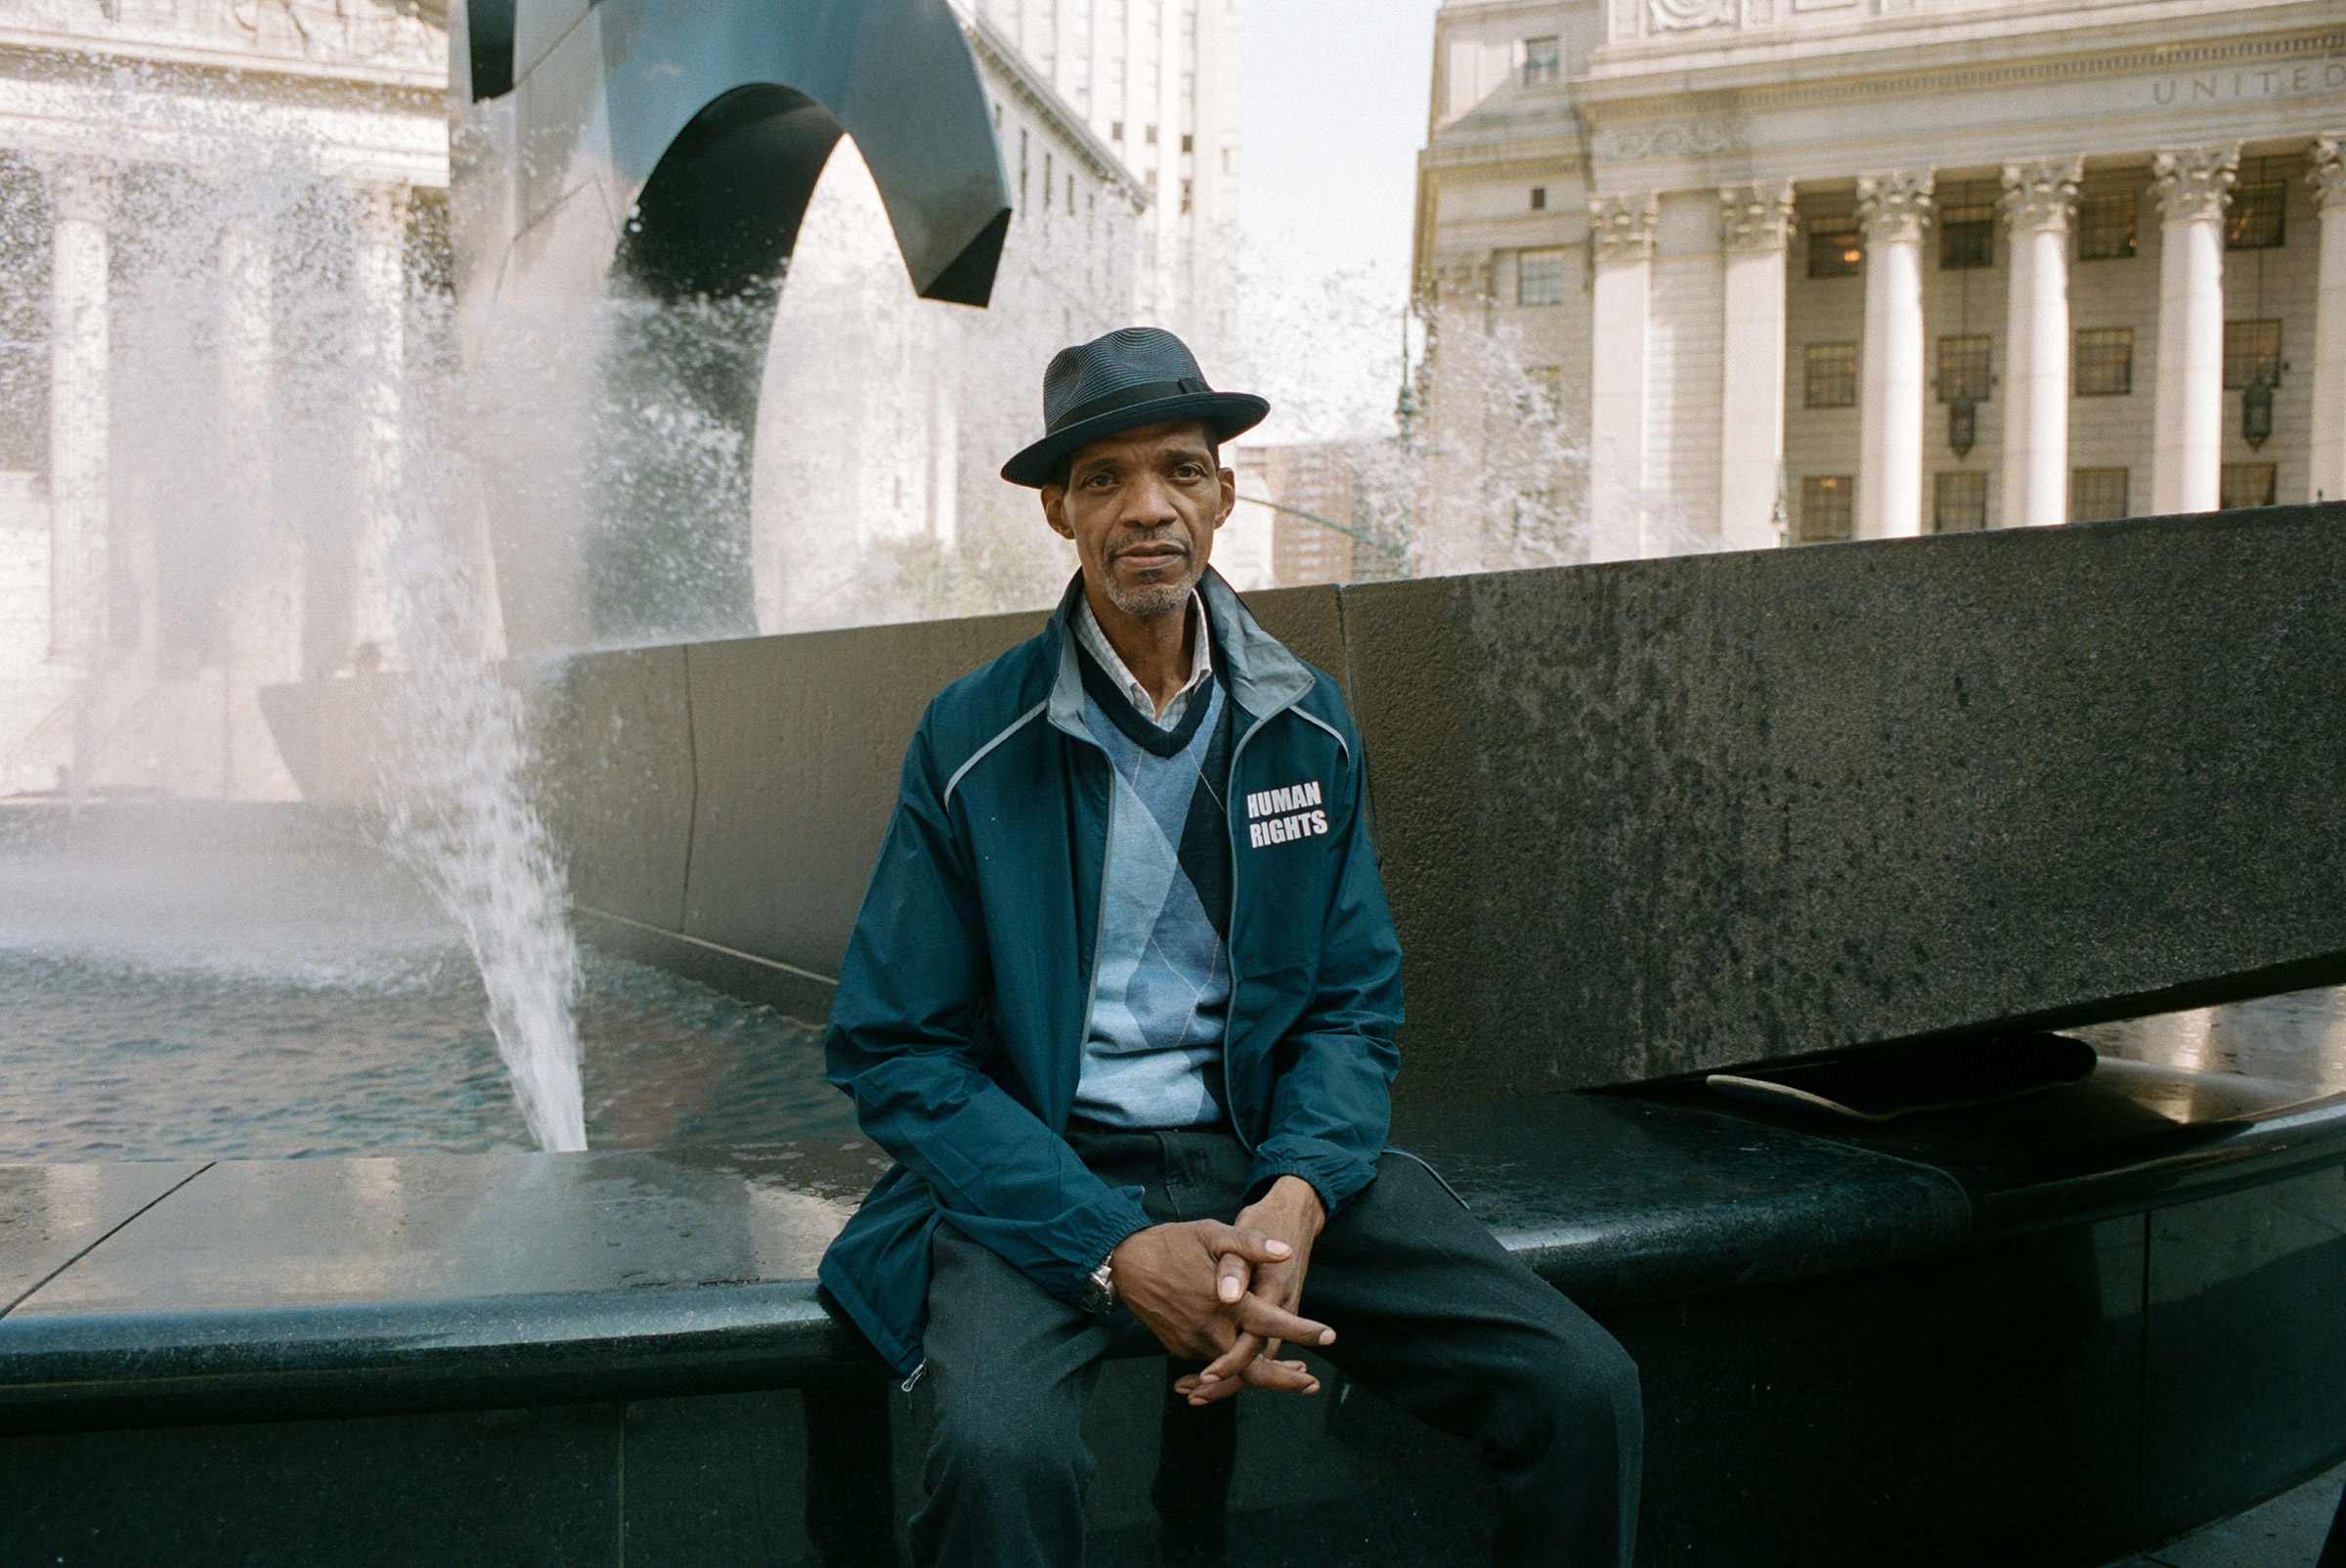 A human rights advocate at the Foley Square fountain, Aug. 27, 2021.